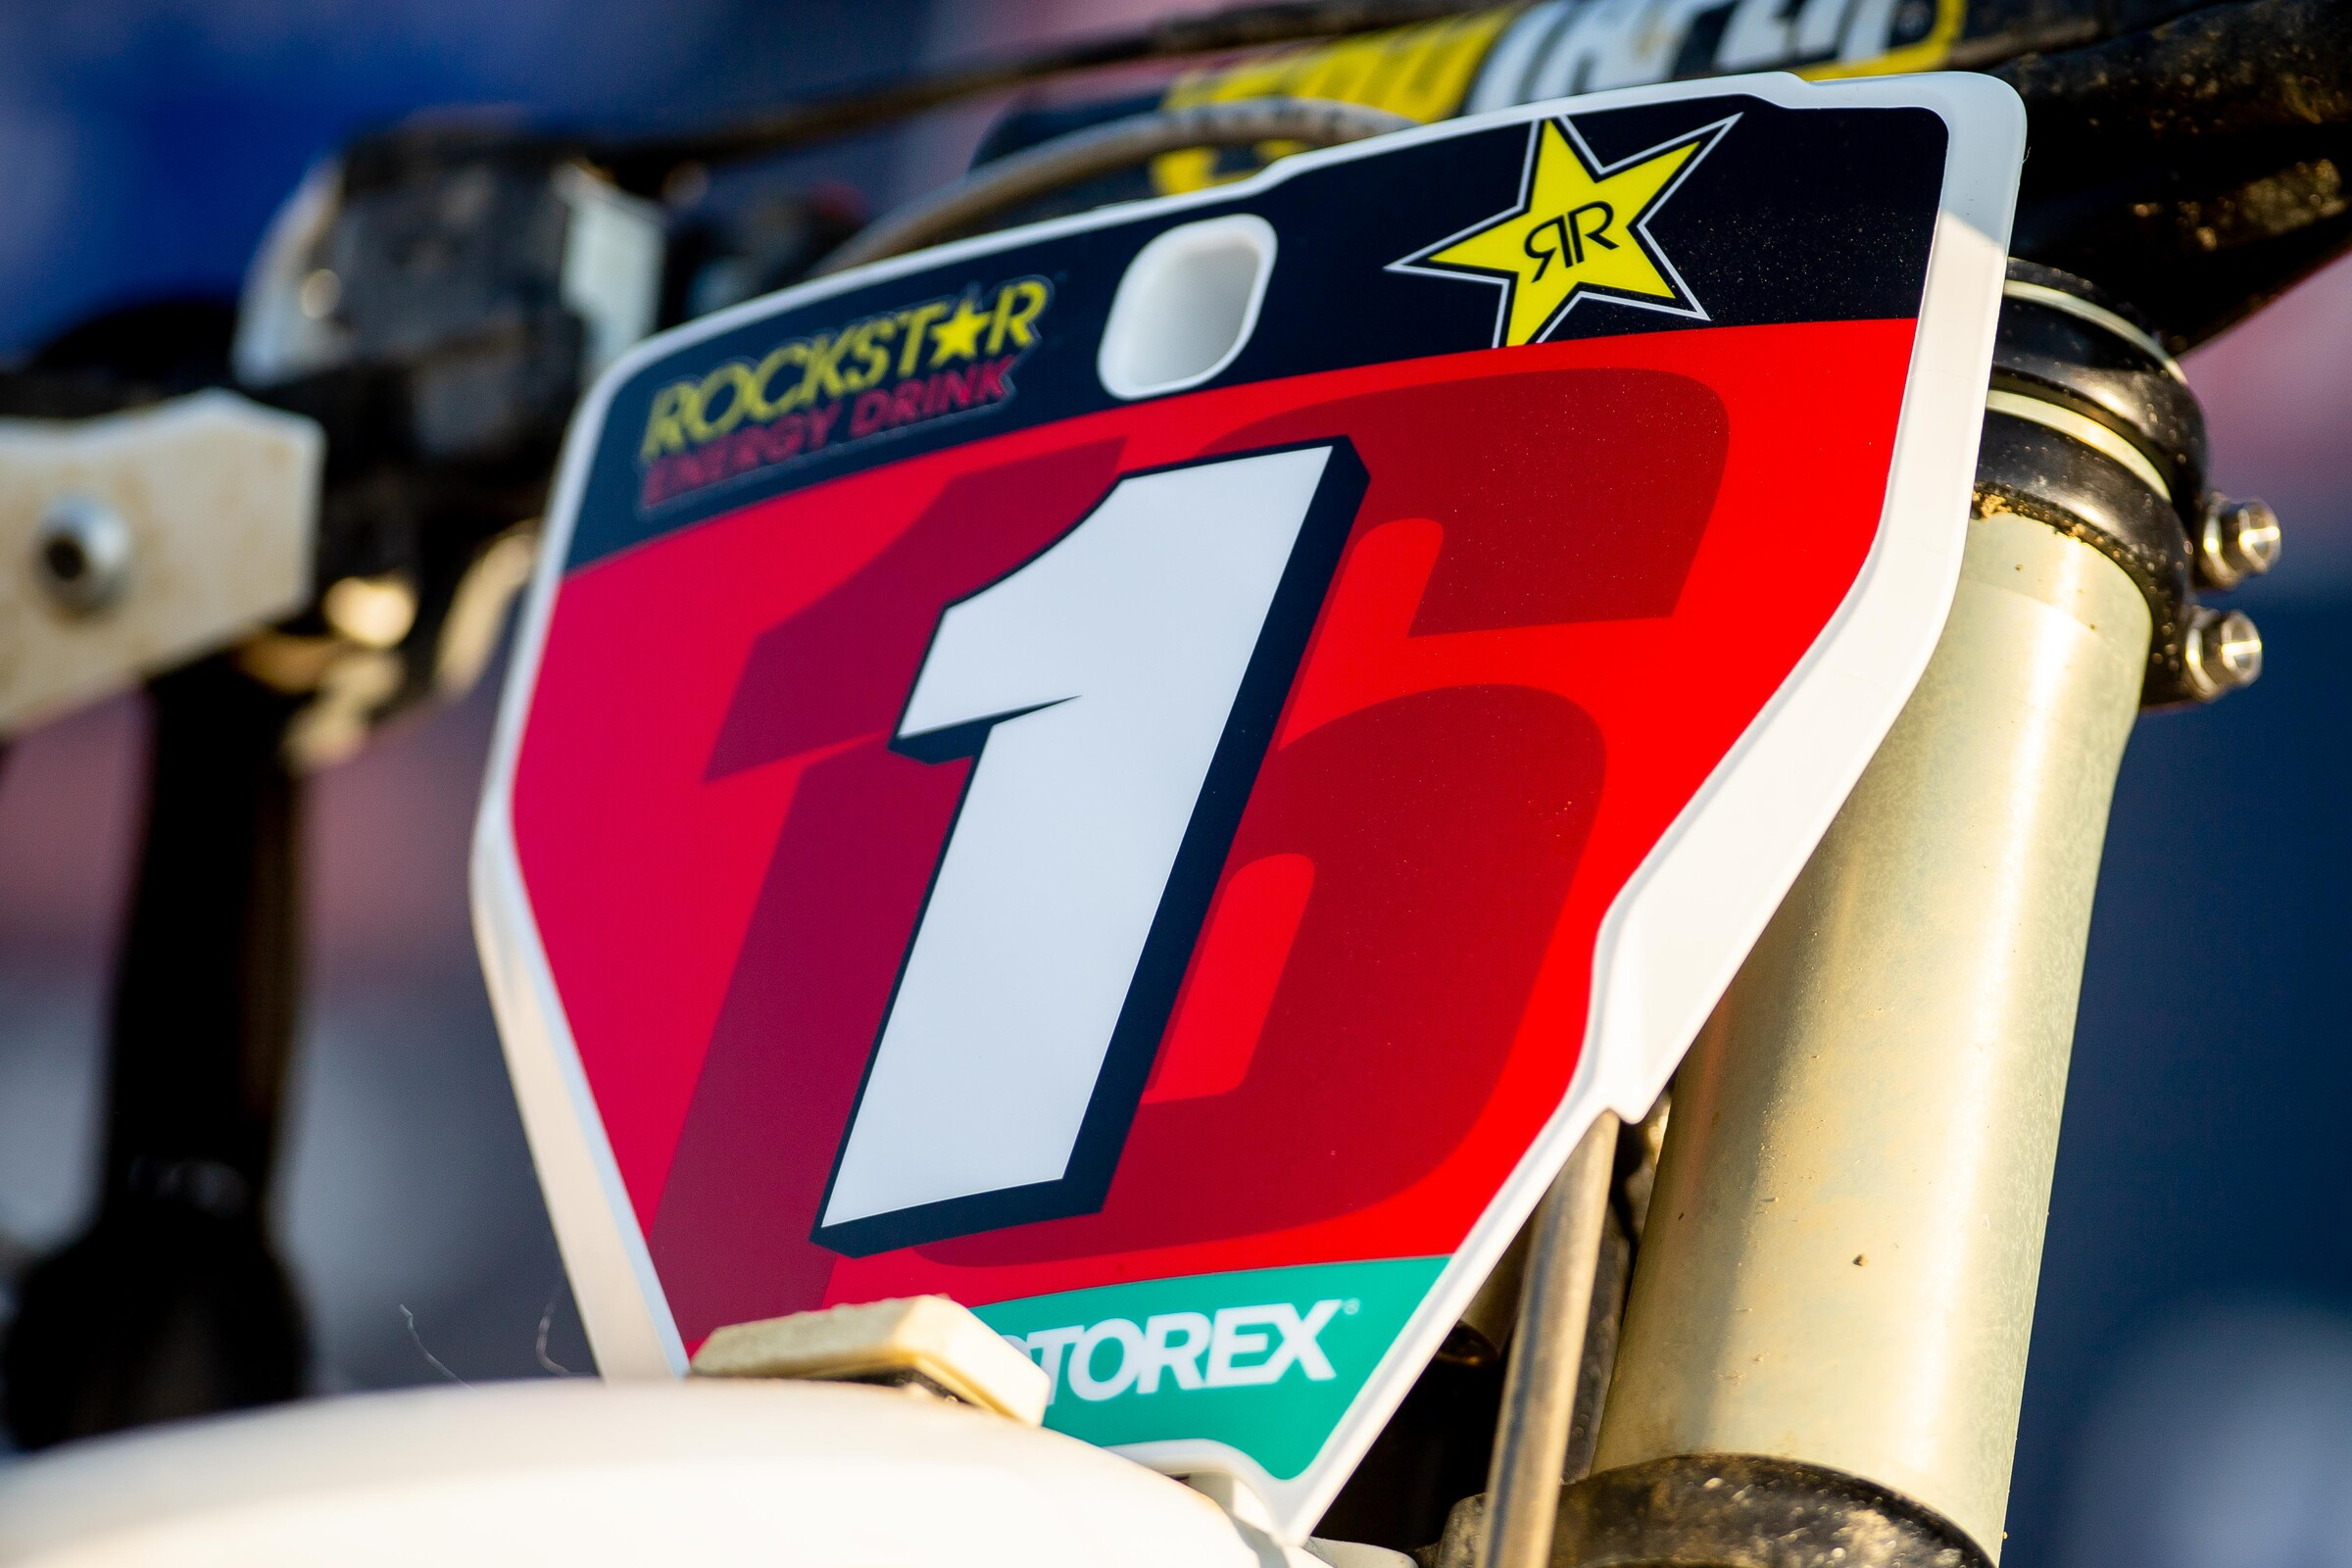 Zach Osborne's Husqvarna FC 450 with the #1 plate following the Virginia native's first premier class title.